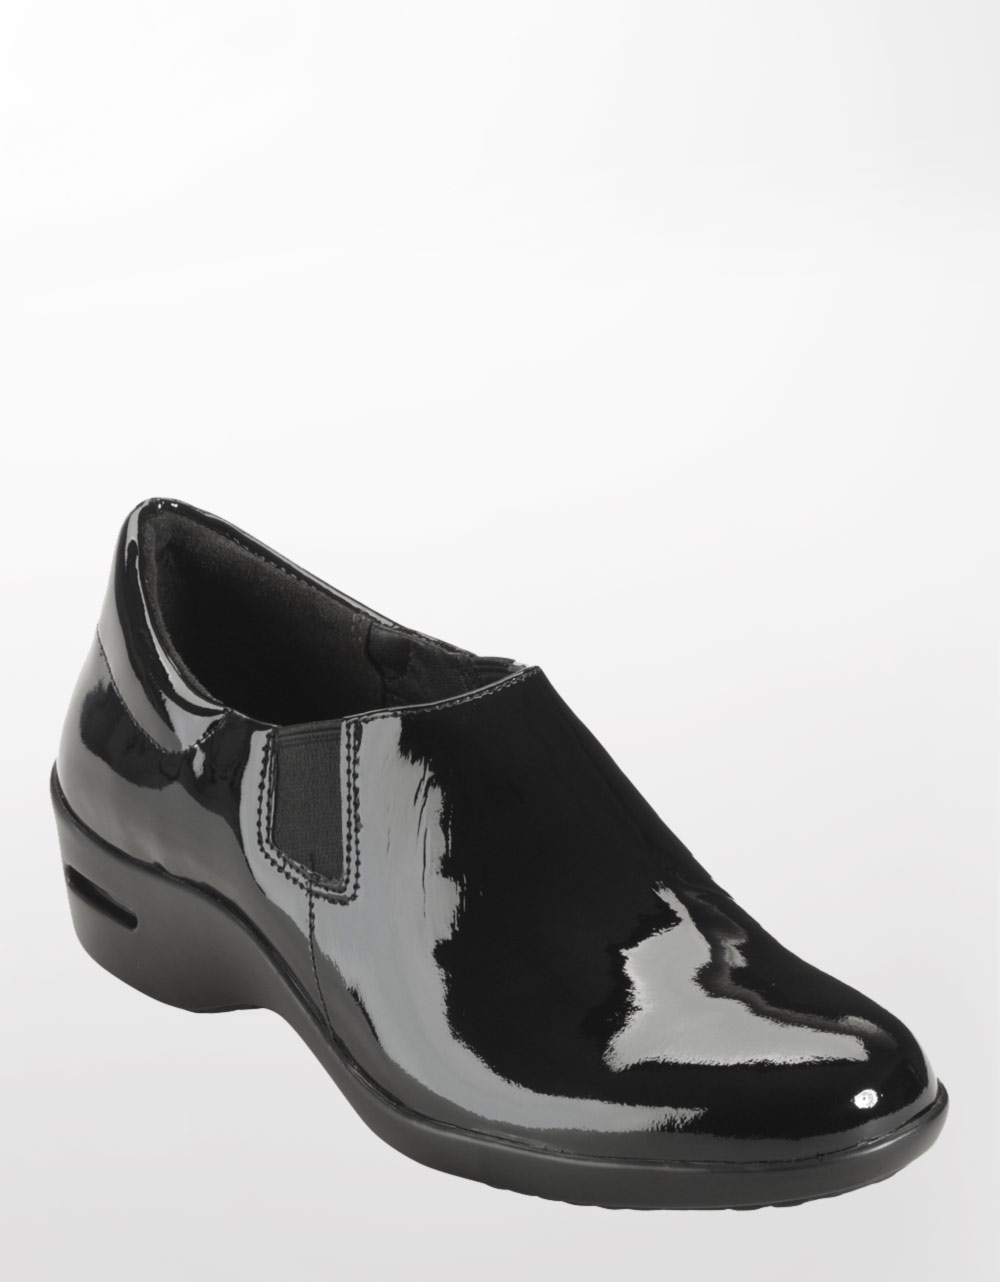 Cole Haan Patent Leather Shoes Women